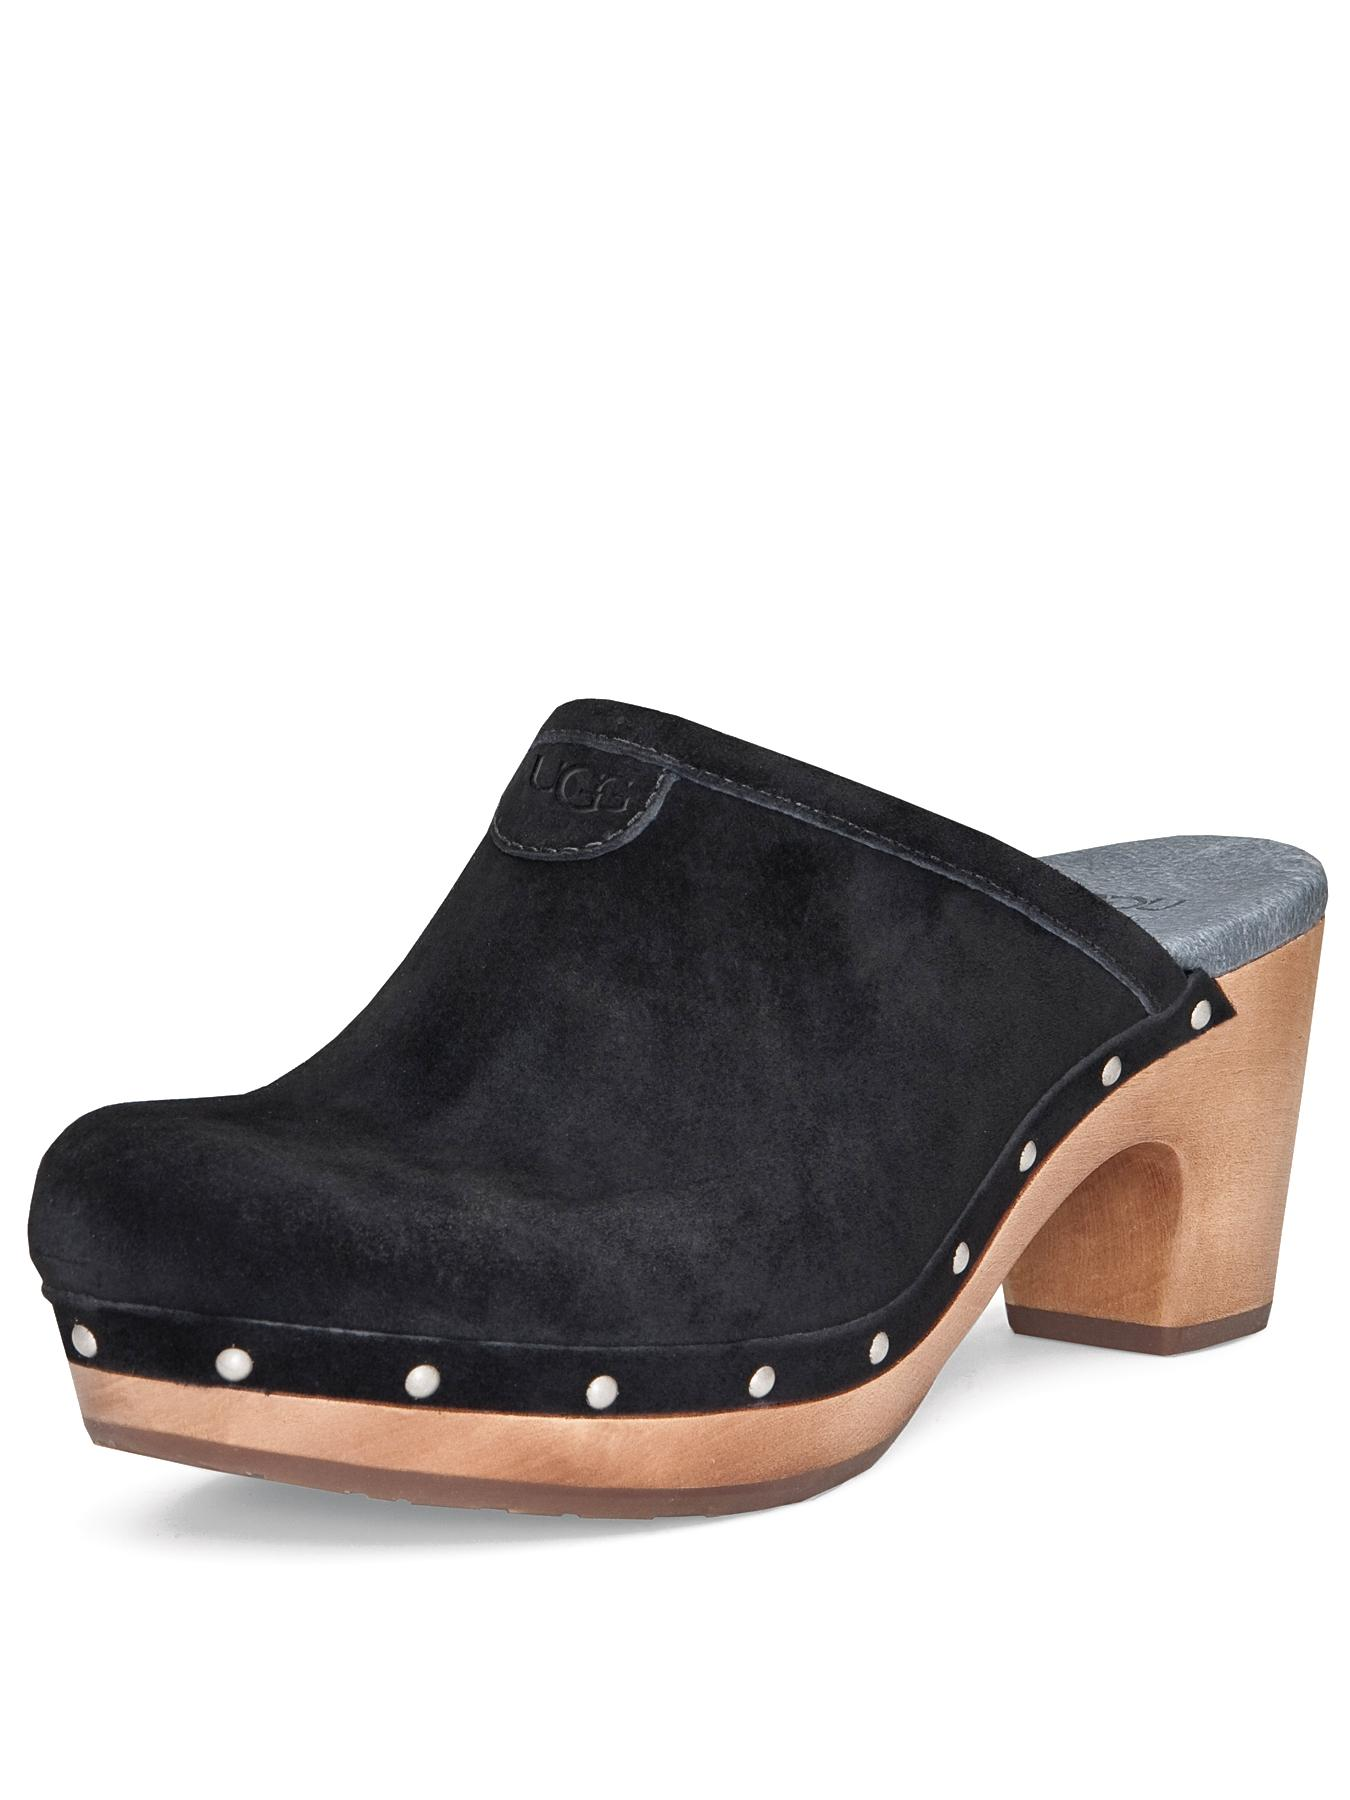 Abbie Clogs Black